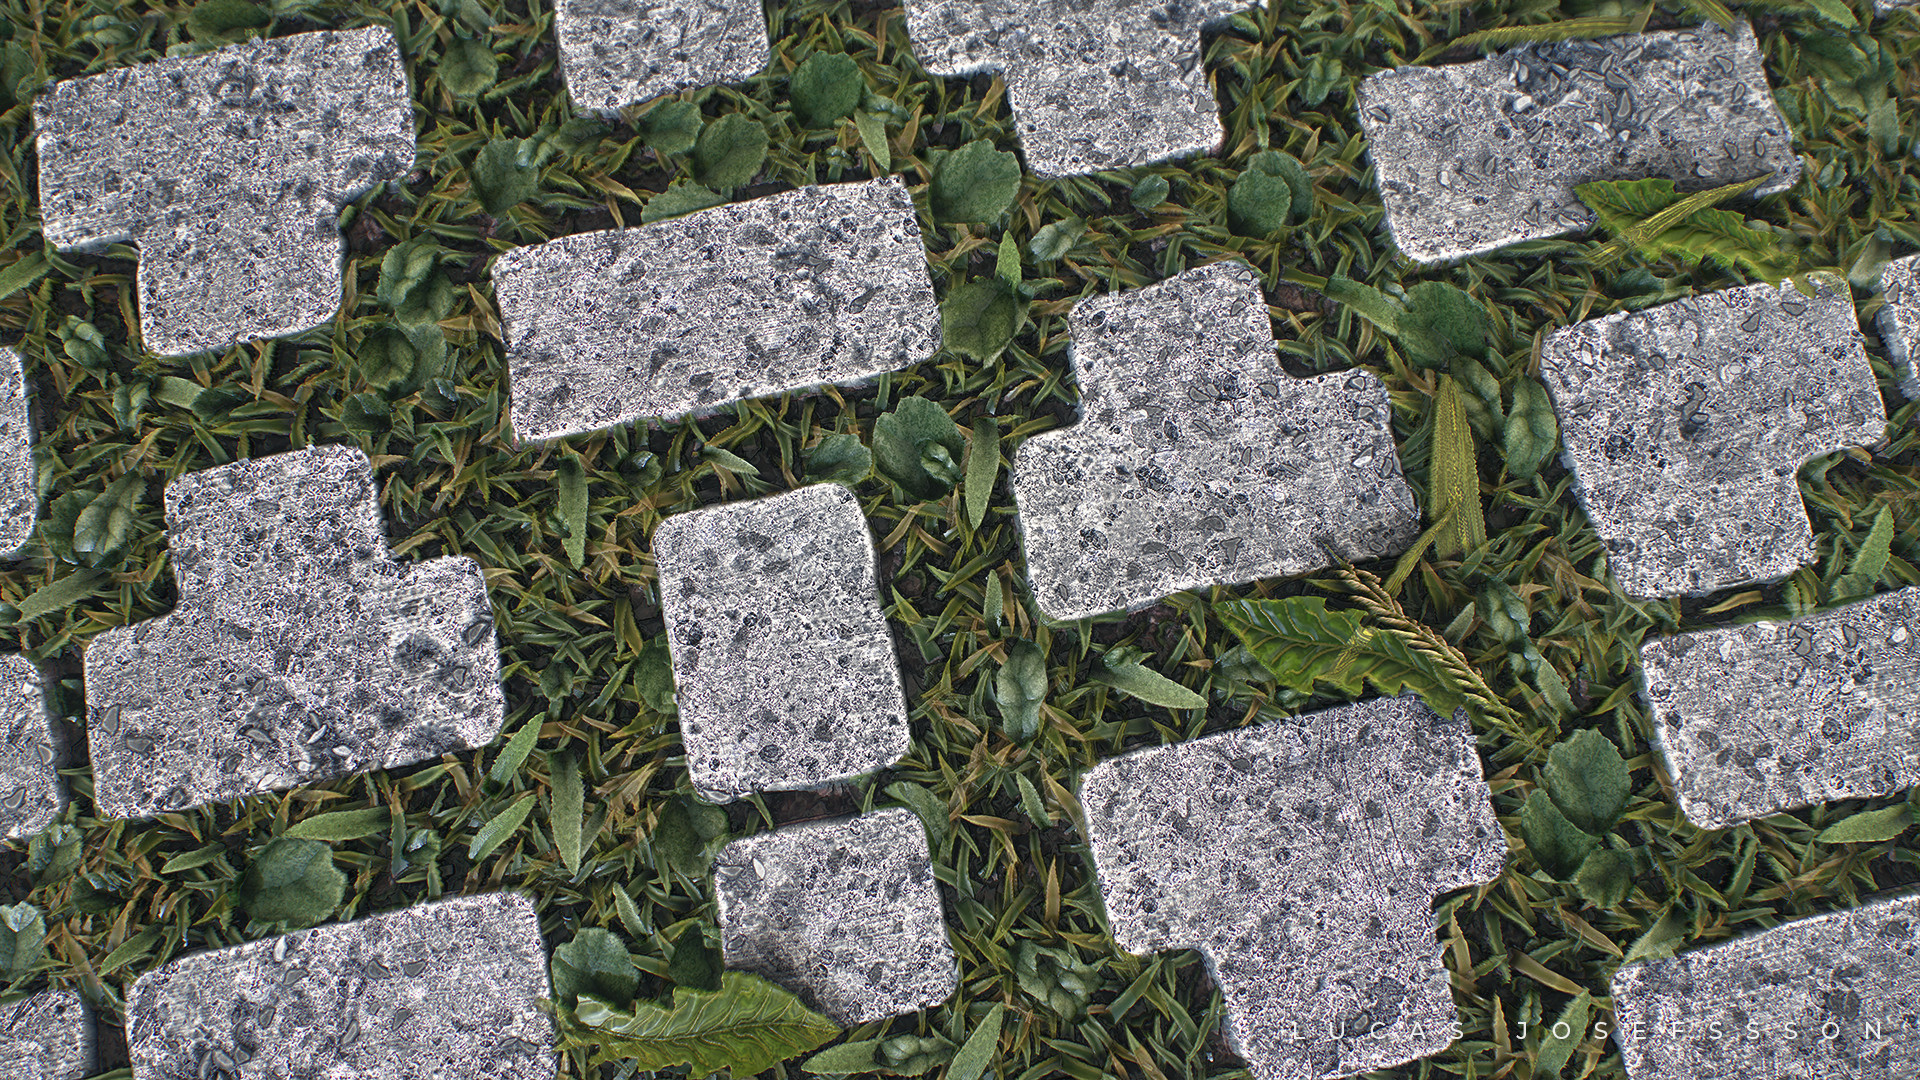 Lucas josefsson cobble with grass lucasjosefsson closeup 1